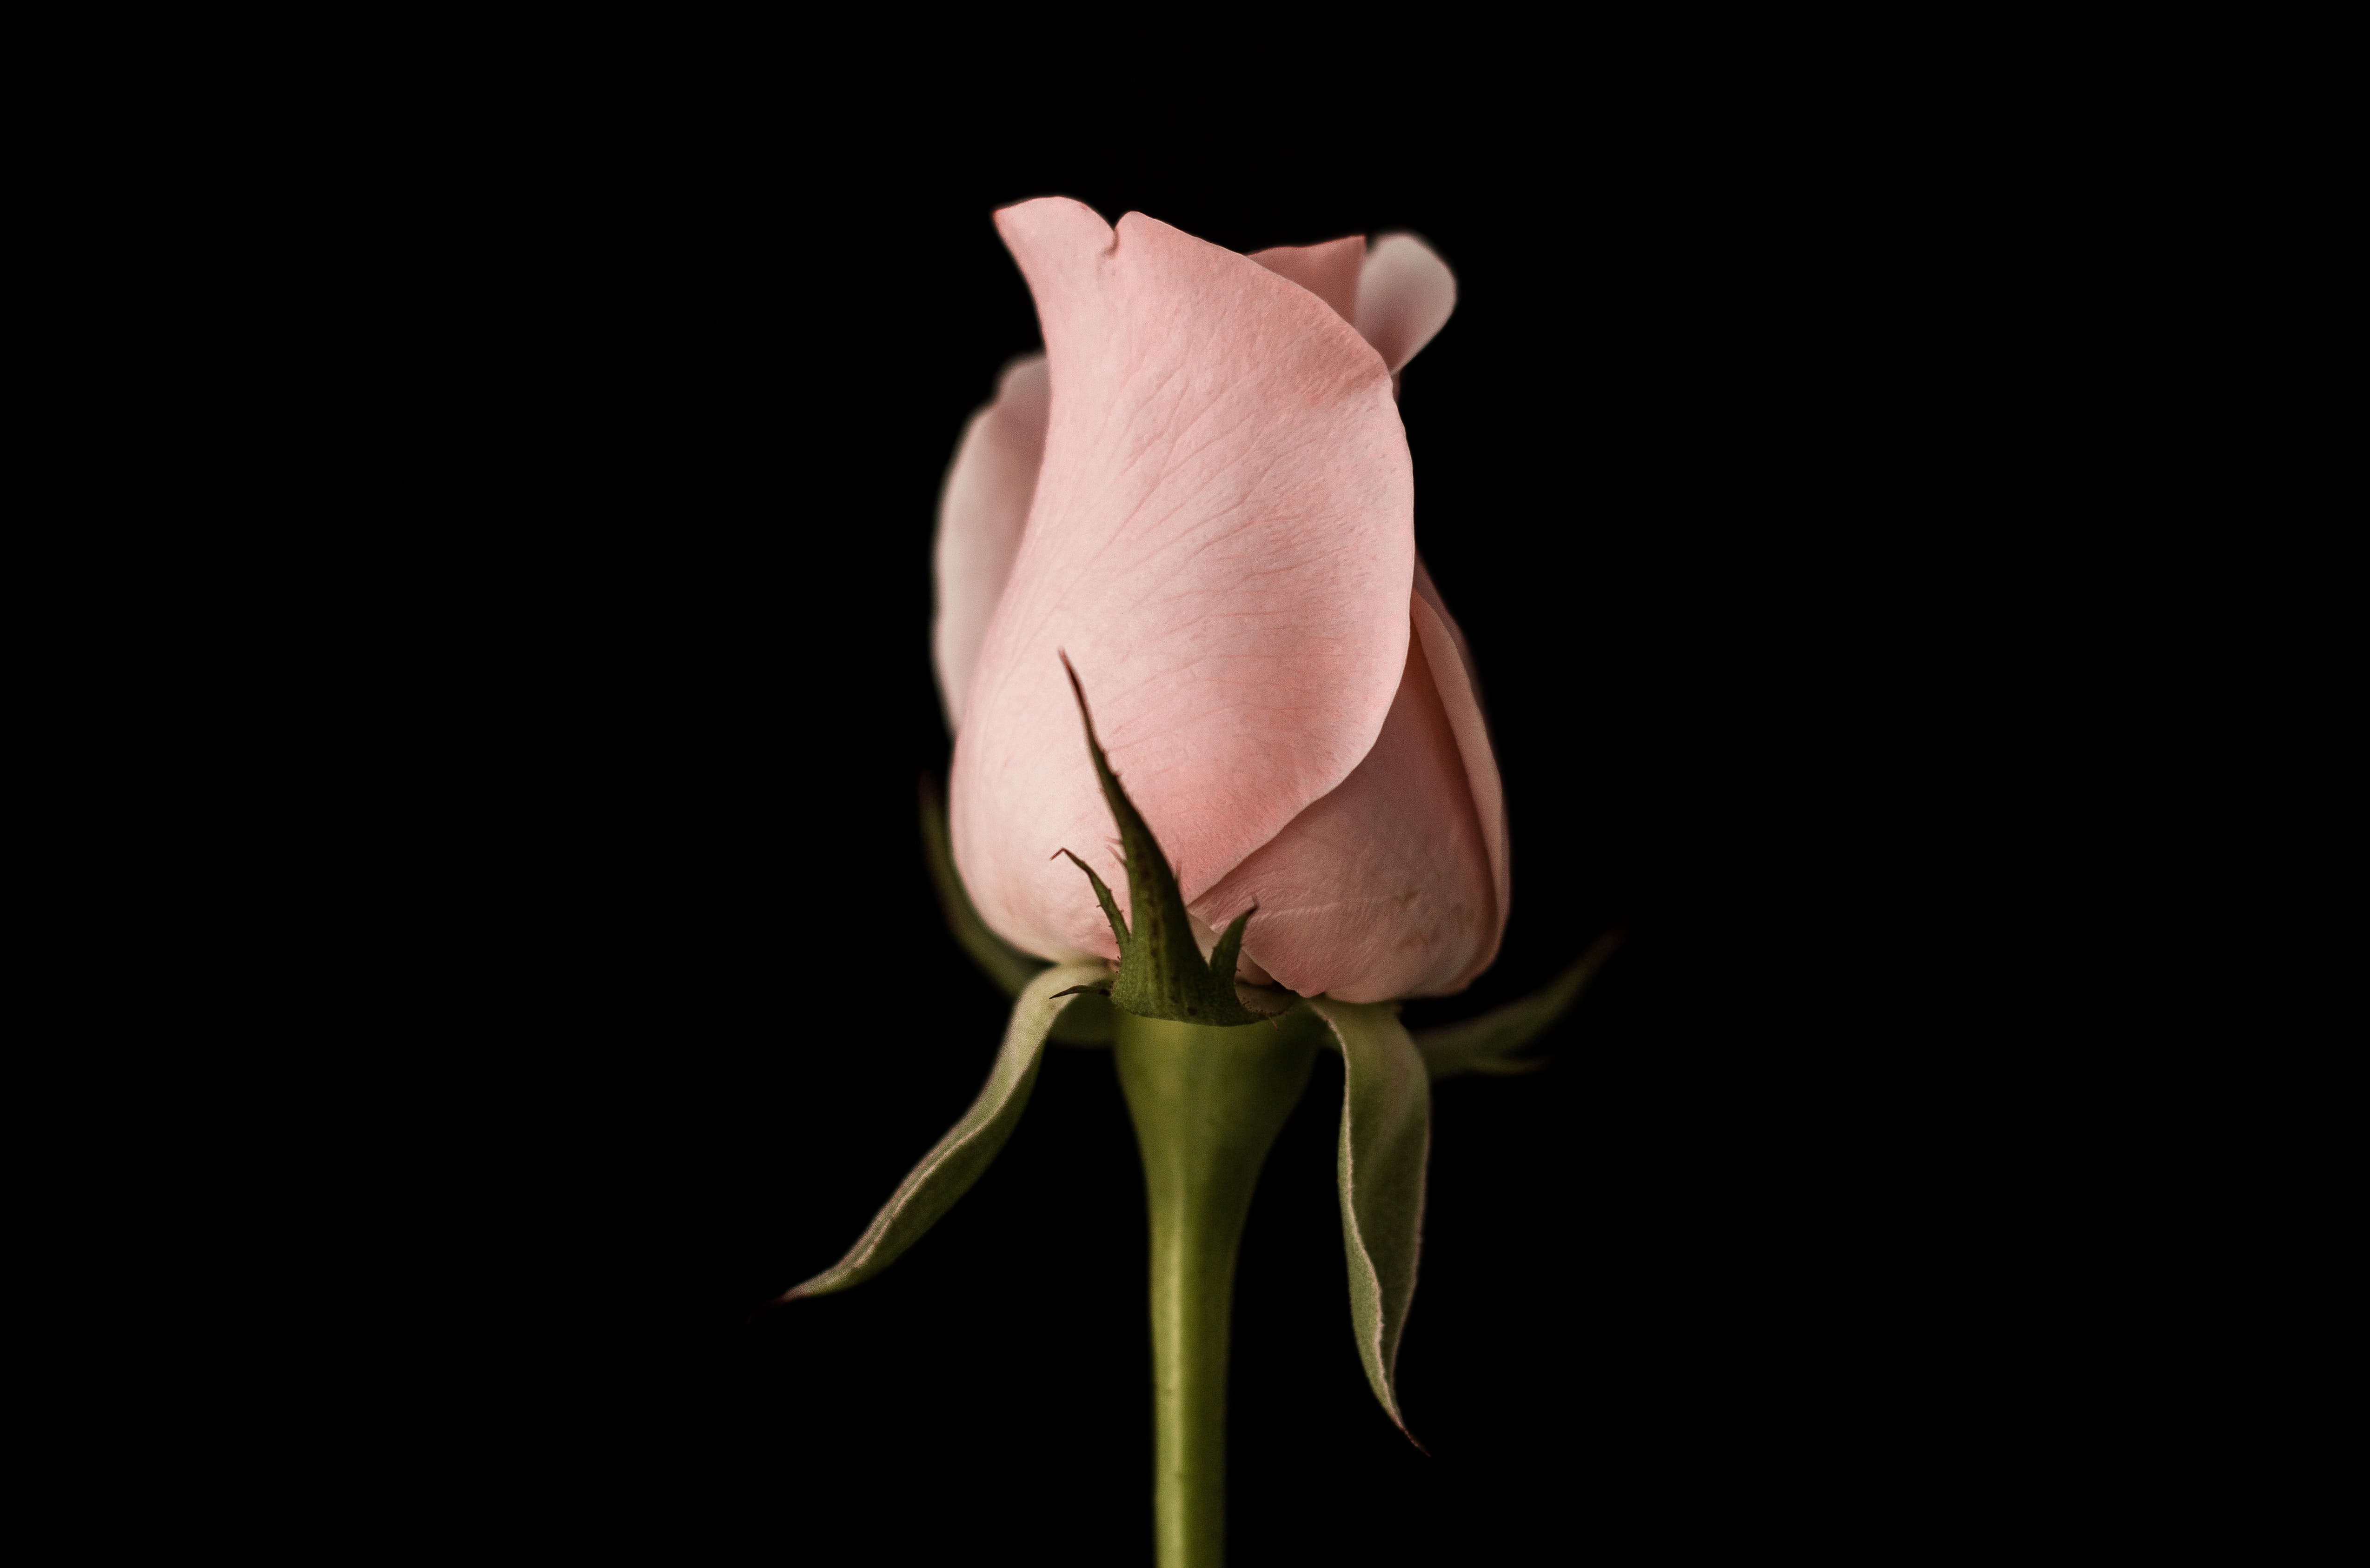 pink rose bud closeup photo